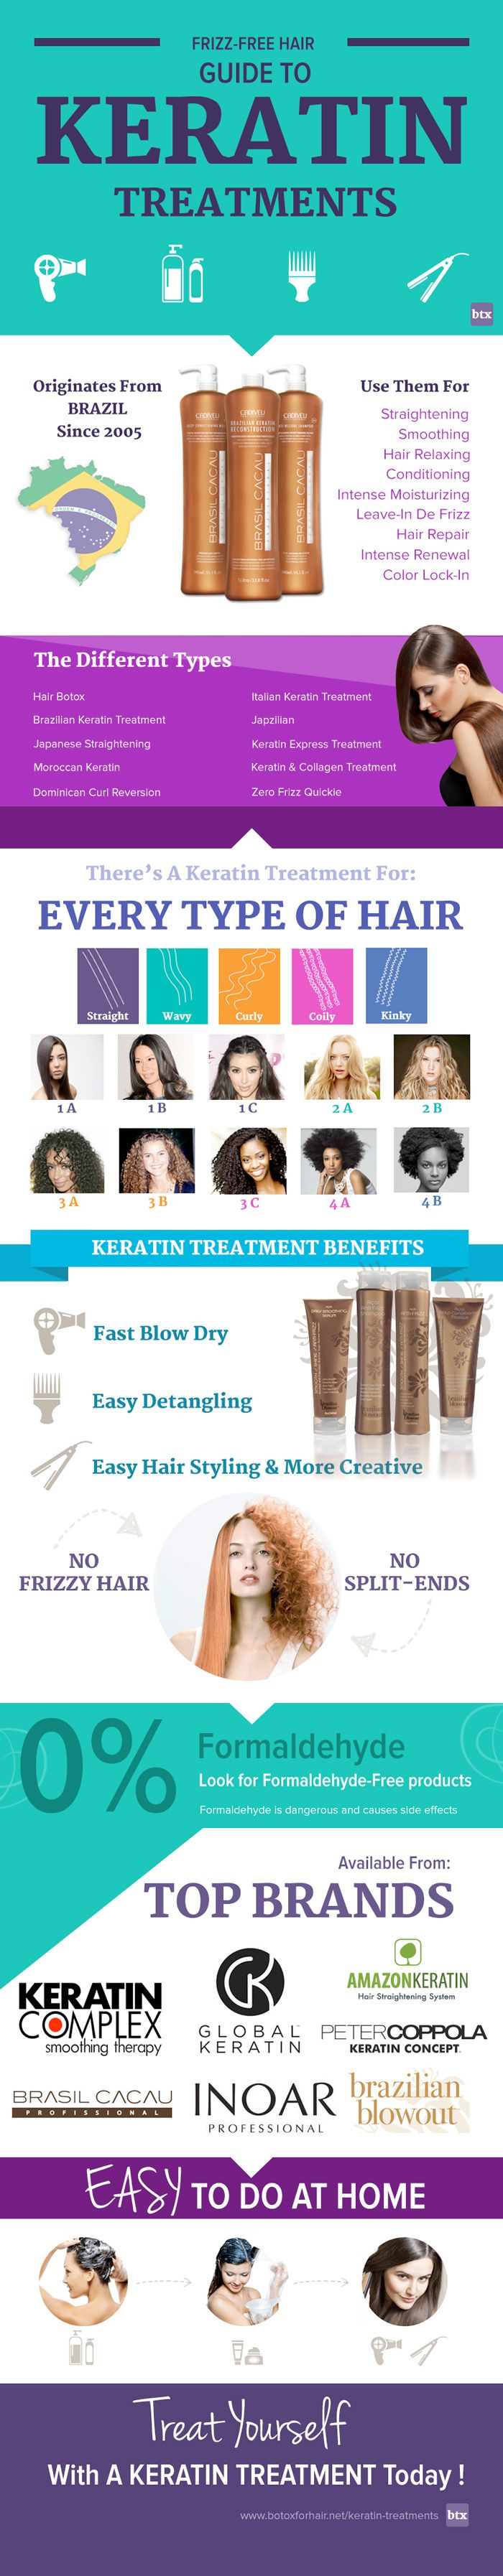 All You Need To Know About Keratin Treatments